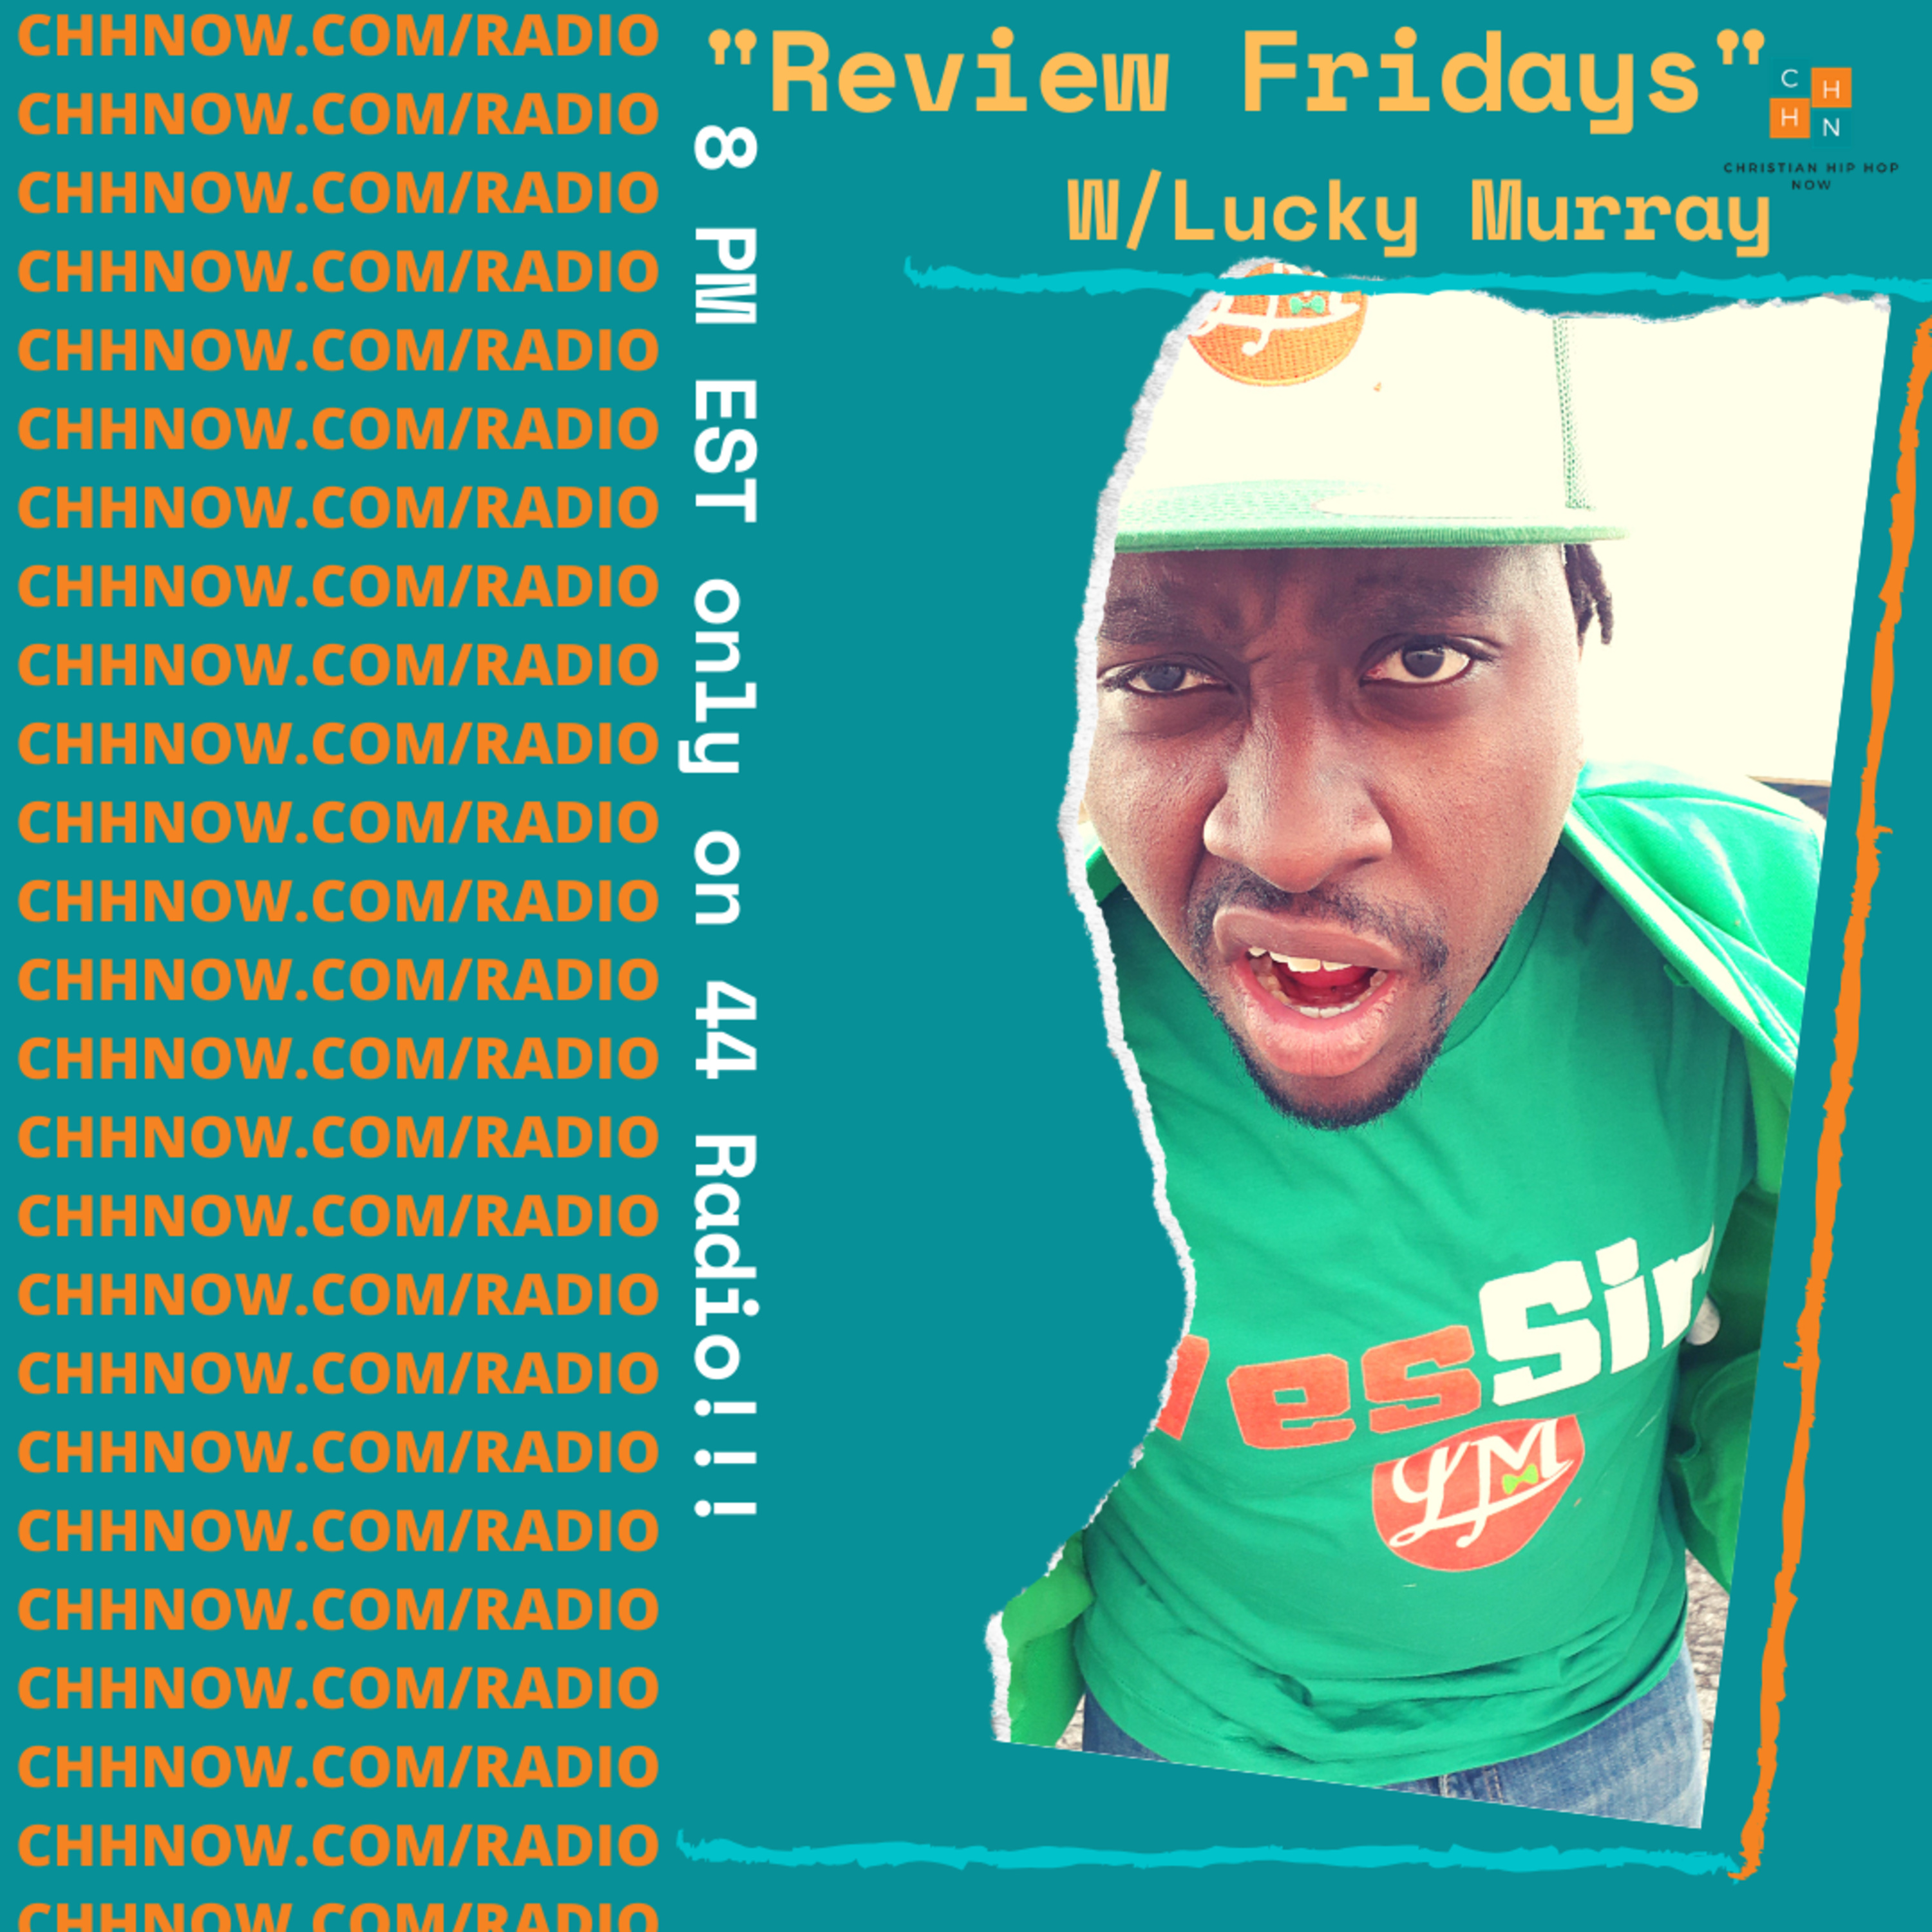 Review Friday's New Christian Hip Hop on 44 Radio 8-14-20